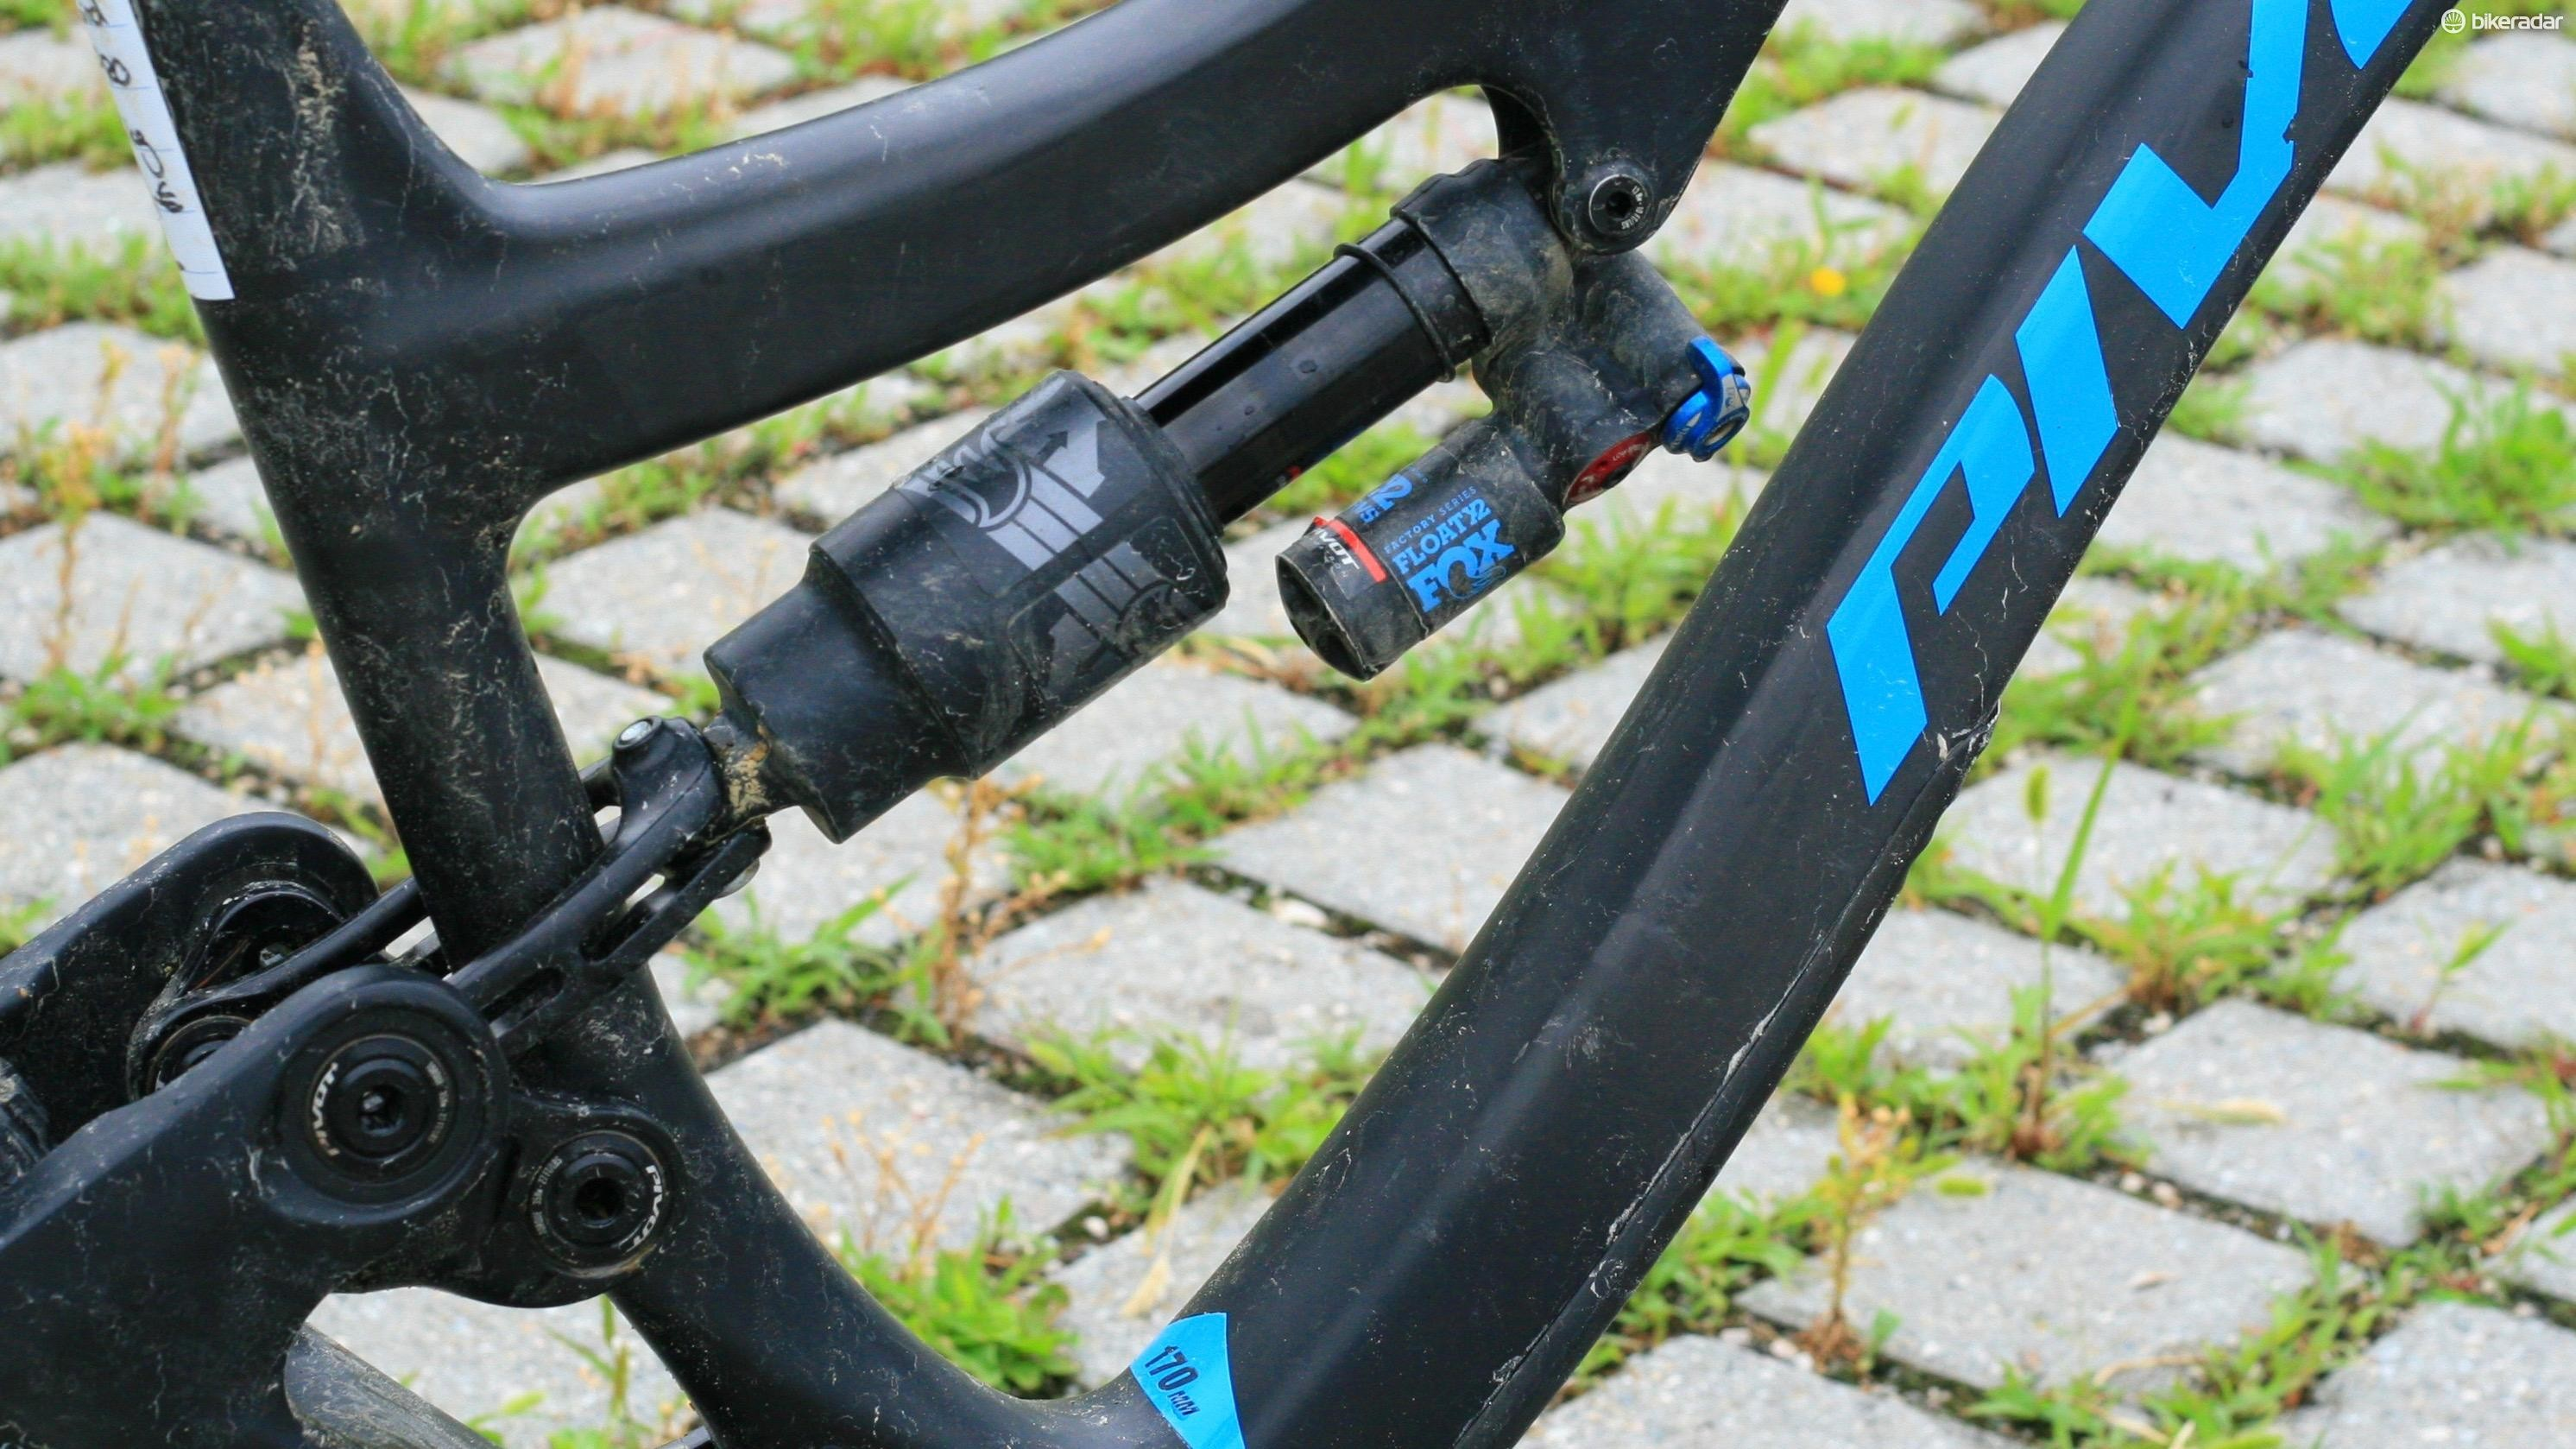 The X2 shock easily controls the rear wheel